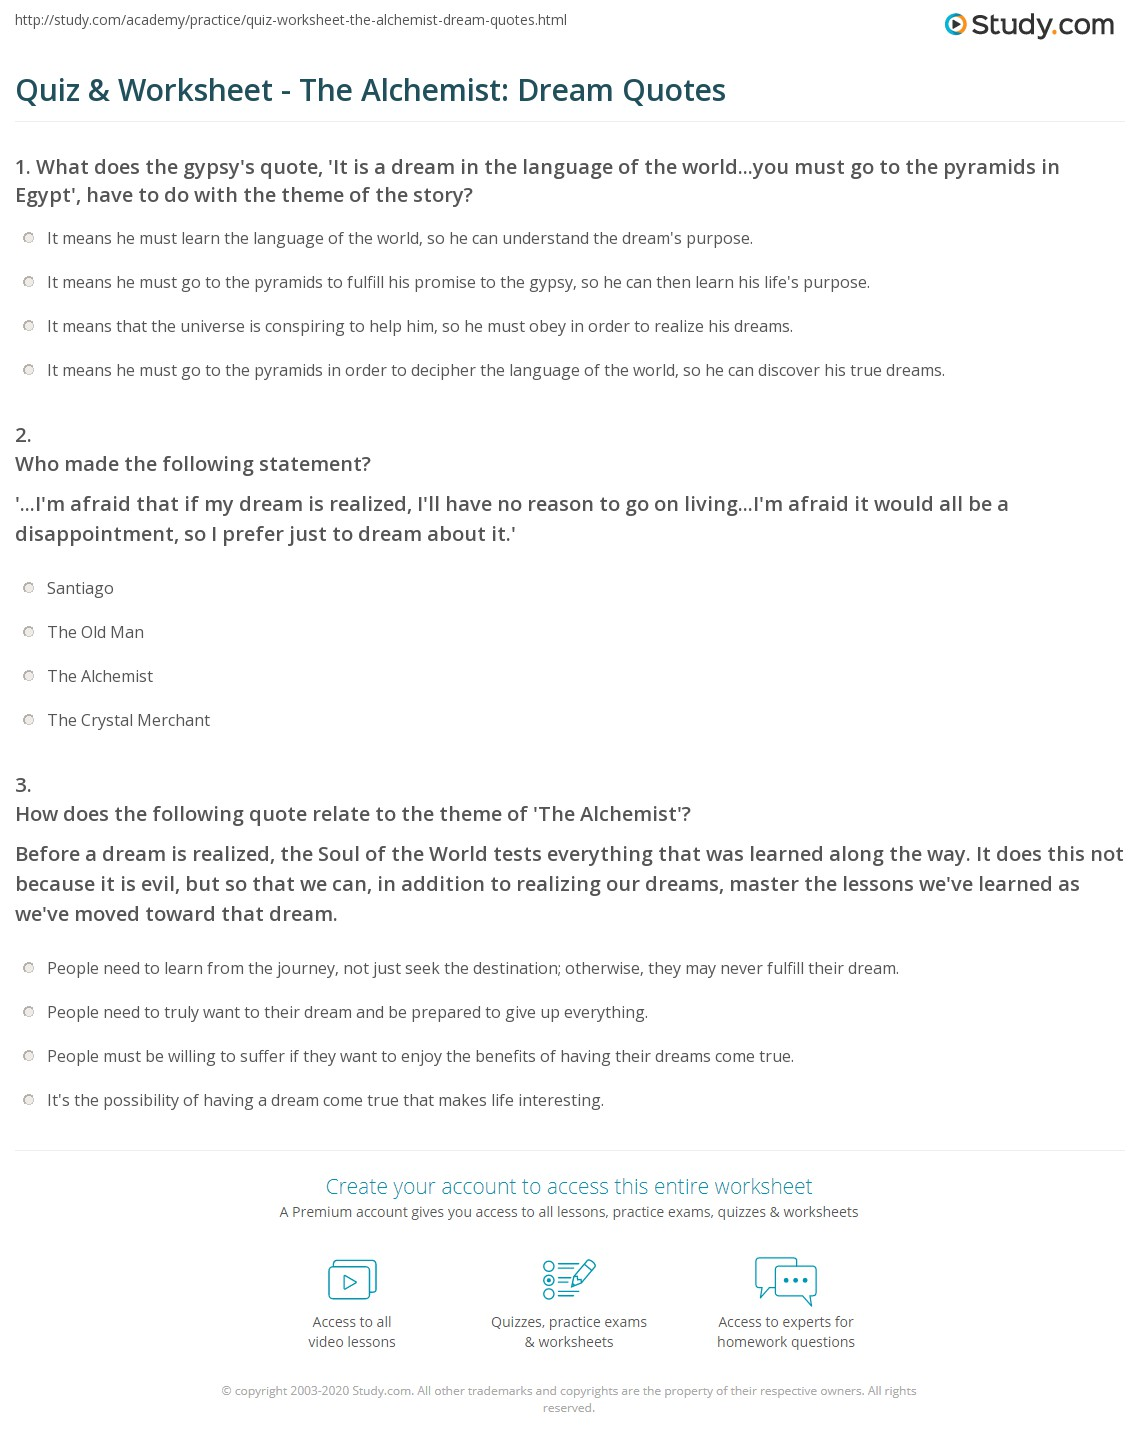 the alchemist language of the world atelier ayesha the alchemist  quiz worksheet the alchemist dream quotes com print quotes about dreams in the alchemist worksheet